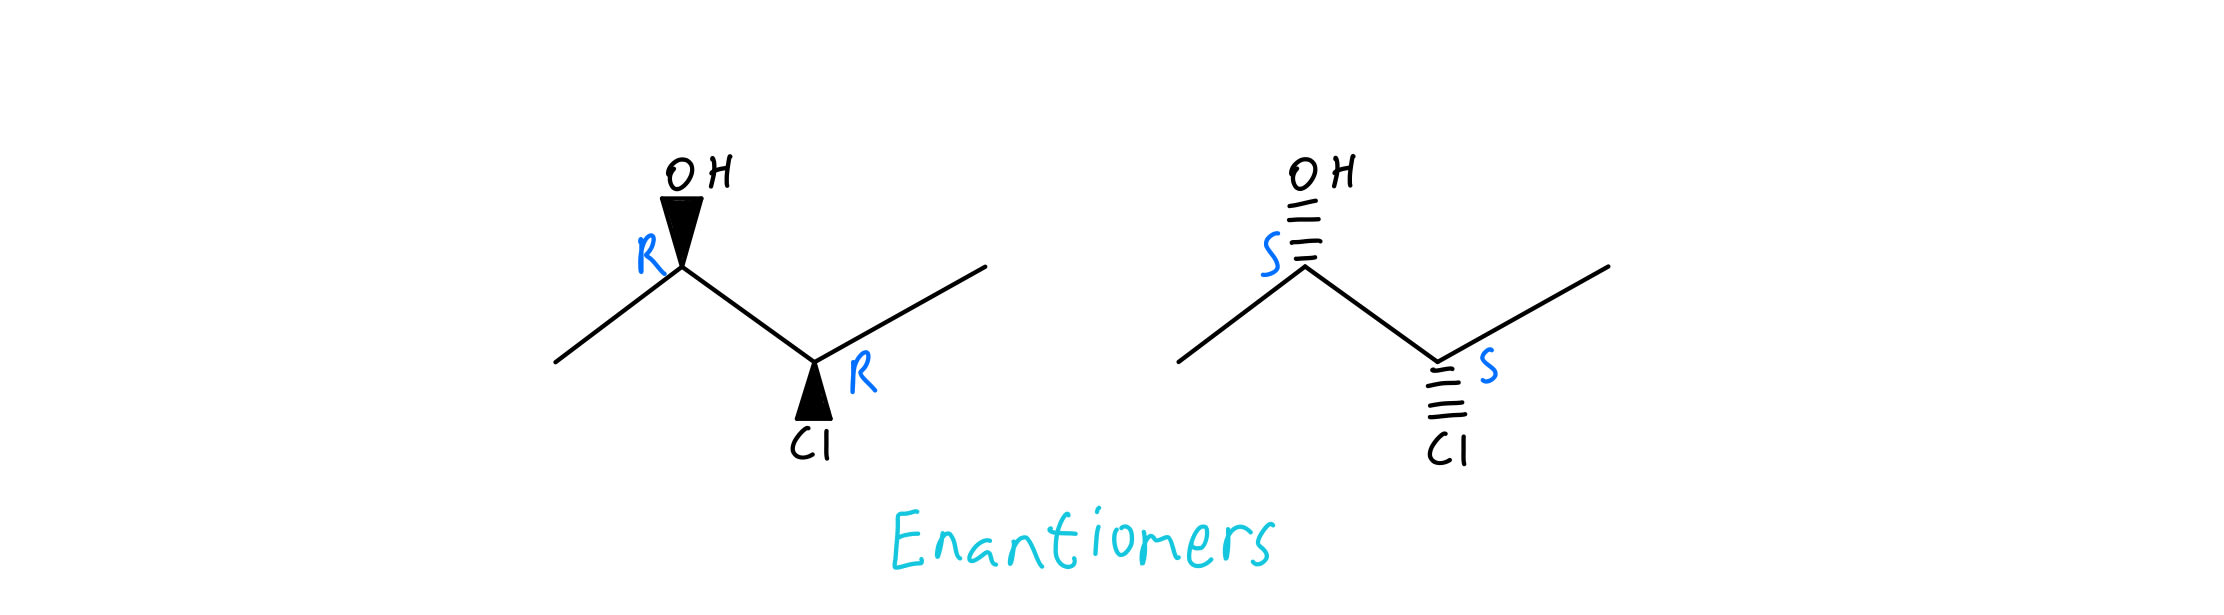 Enantiomers with two chiral centers